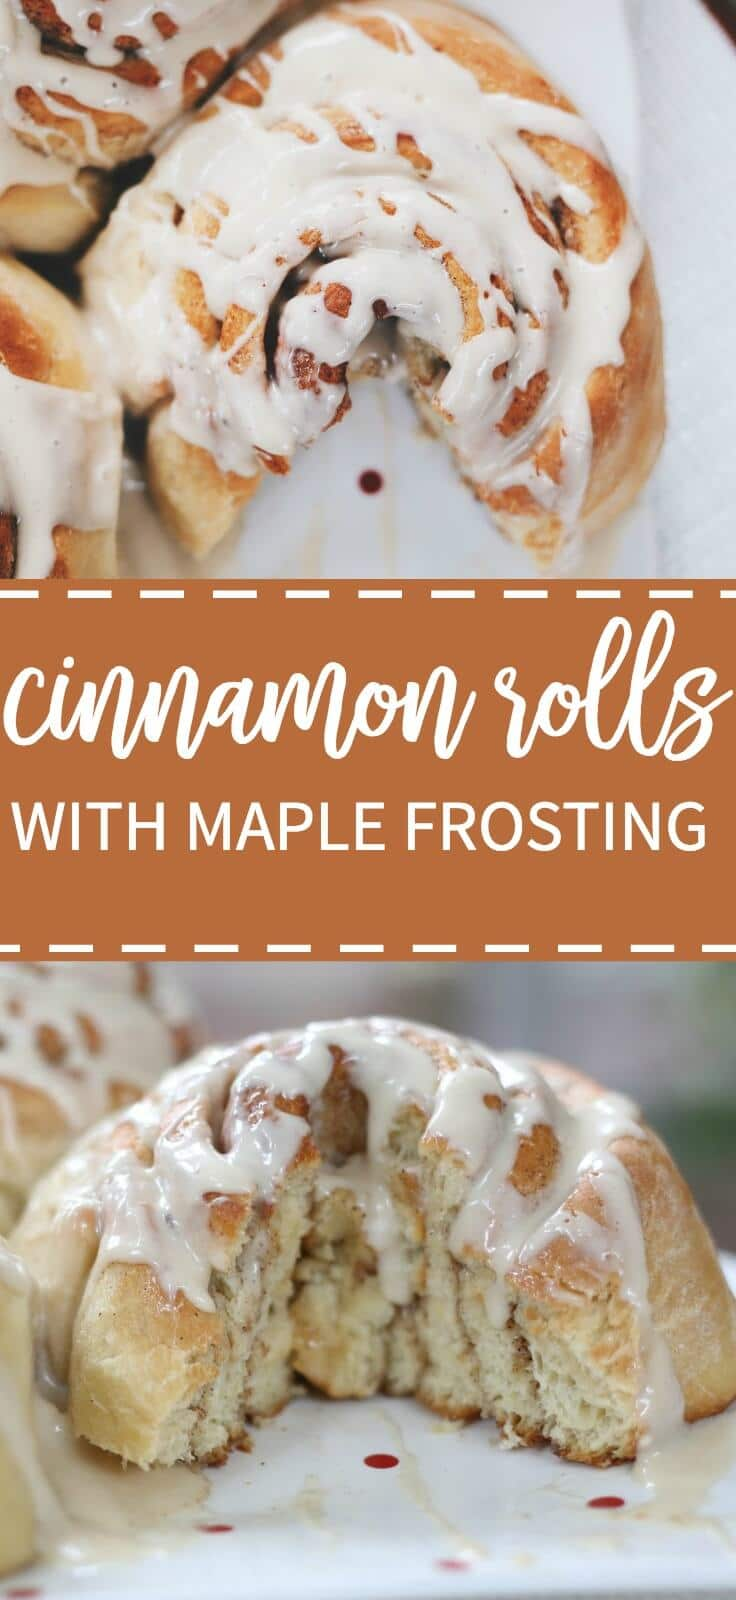 giant cinnamon rolls with maple frosting! These will be the star of your next brunch spread.